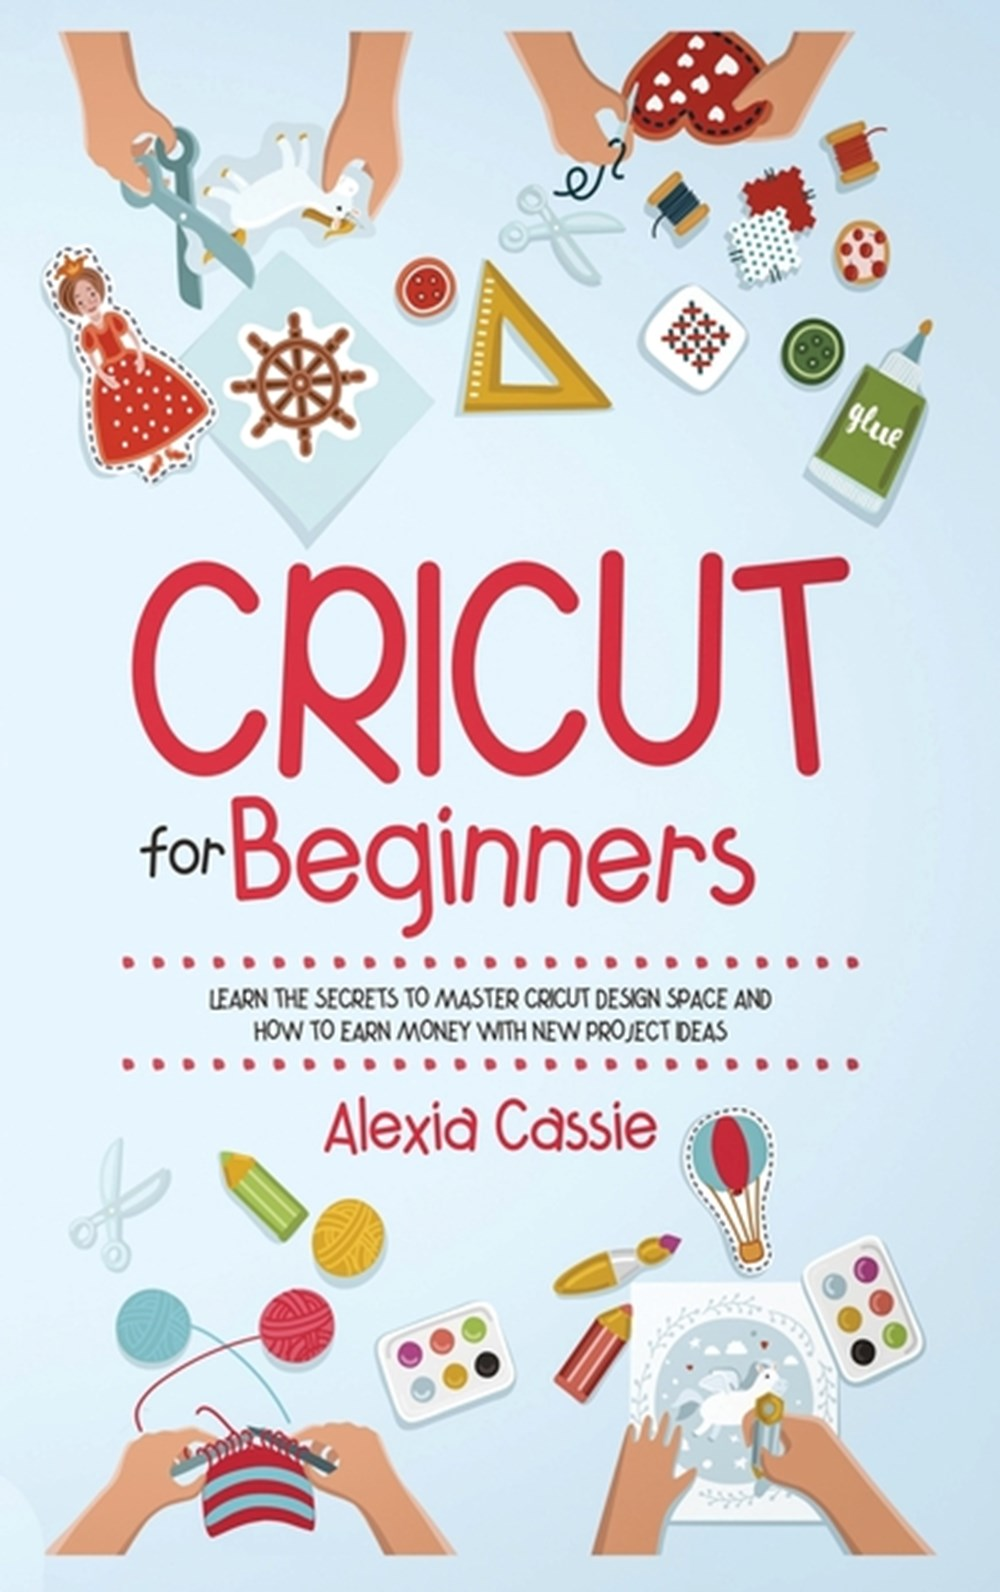 Cricut for Beginners Learn the Secrets to Master Cricut Design Space and Finally Earning Money with